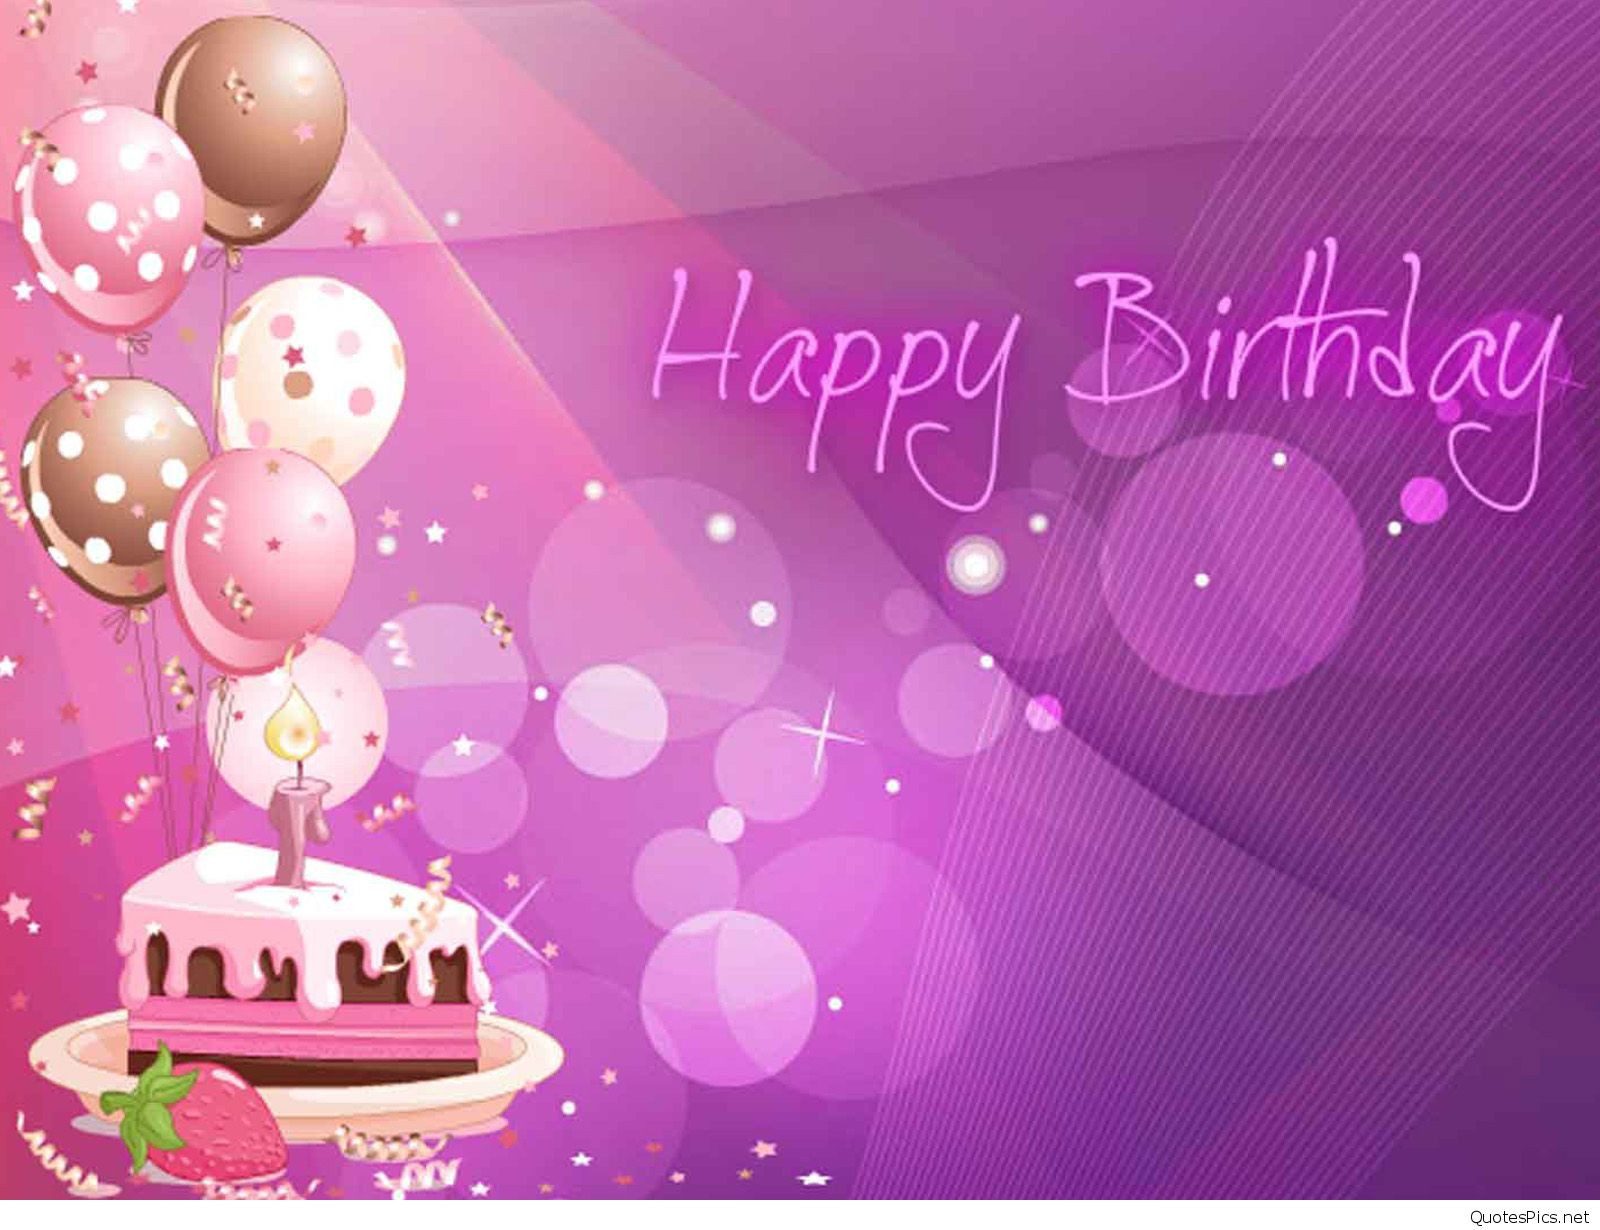 Best ideas about Birthday Wishes For Me . Save or Pin Amazing birthday wishes cards and wallpapers hd Now.